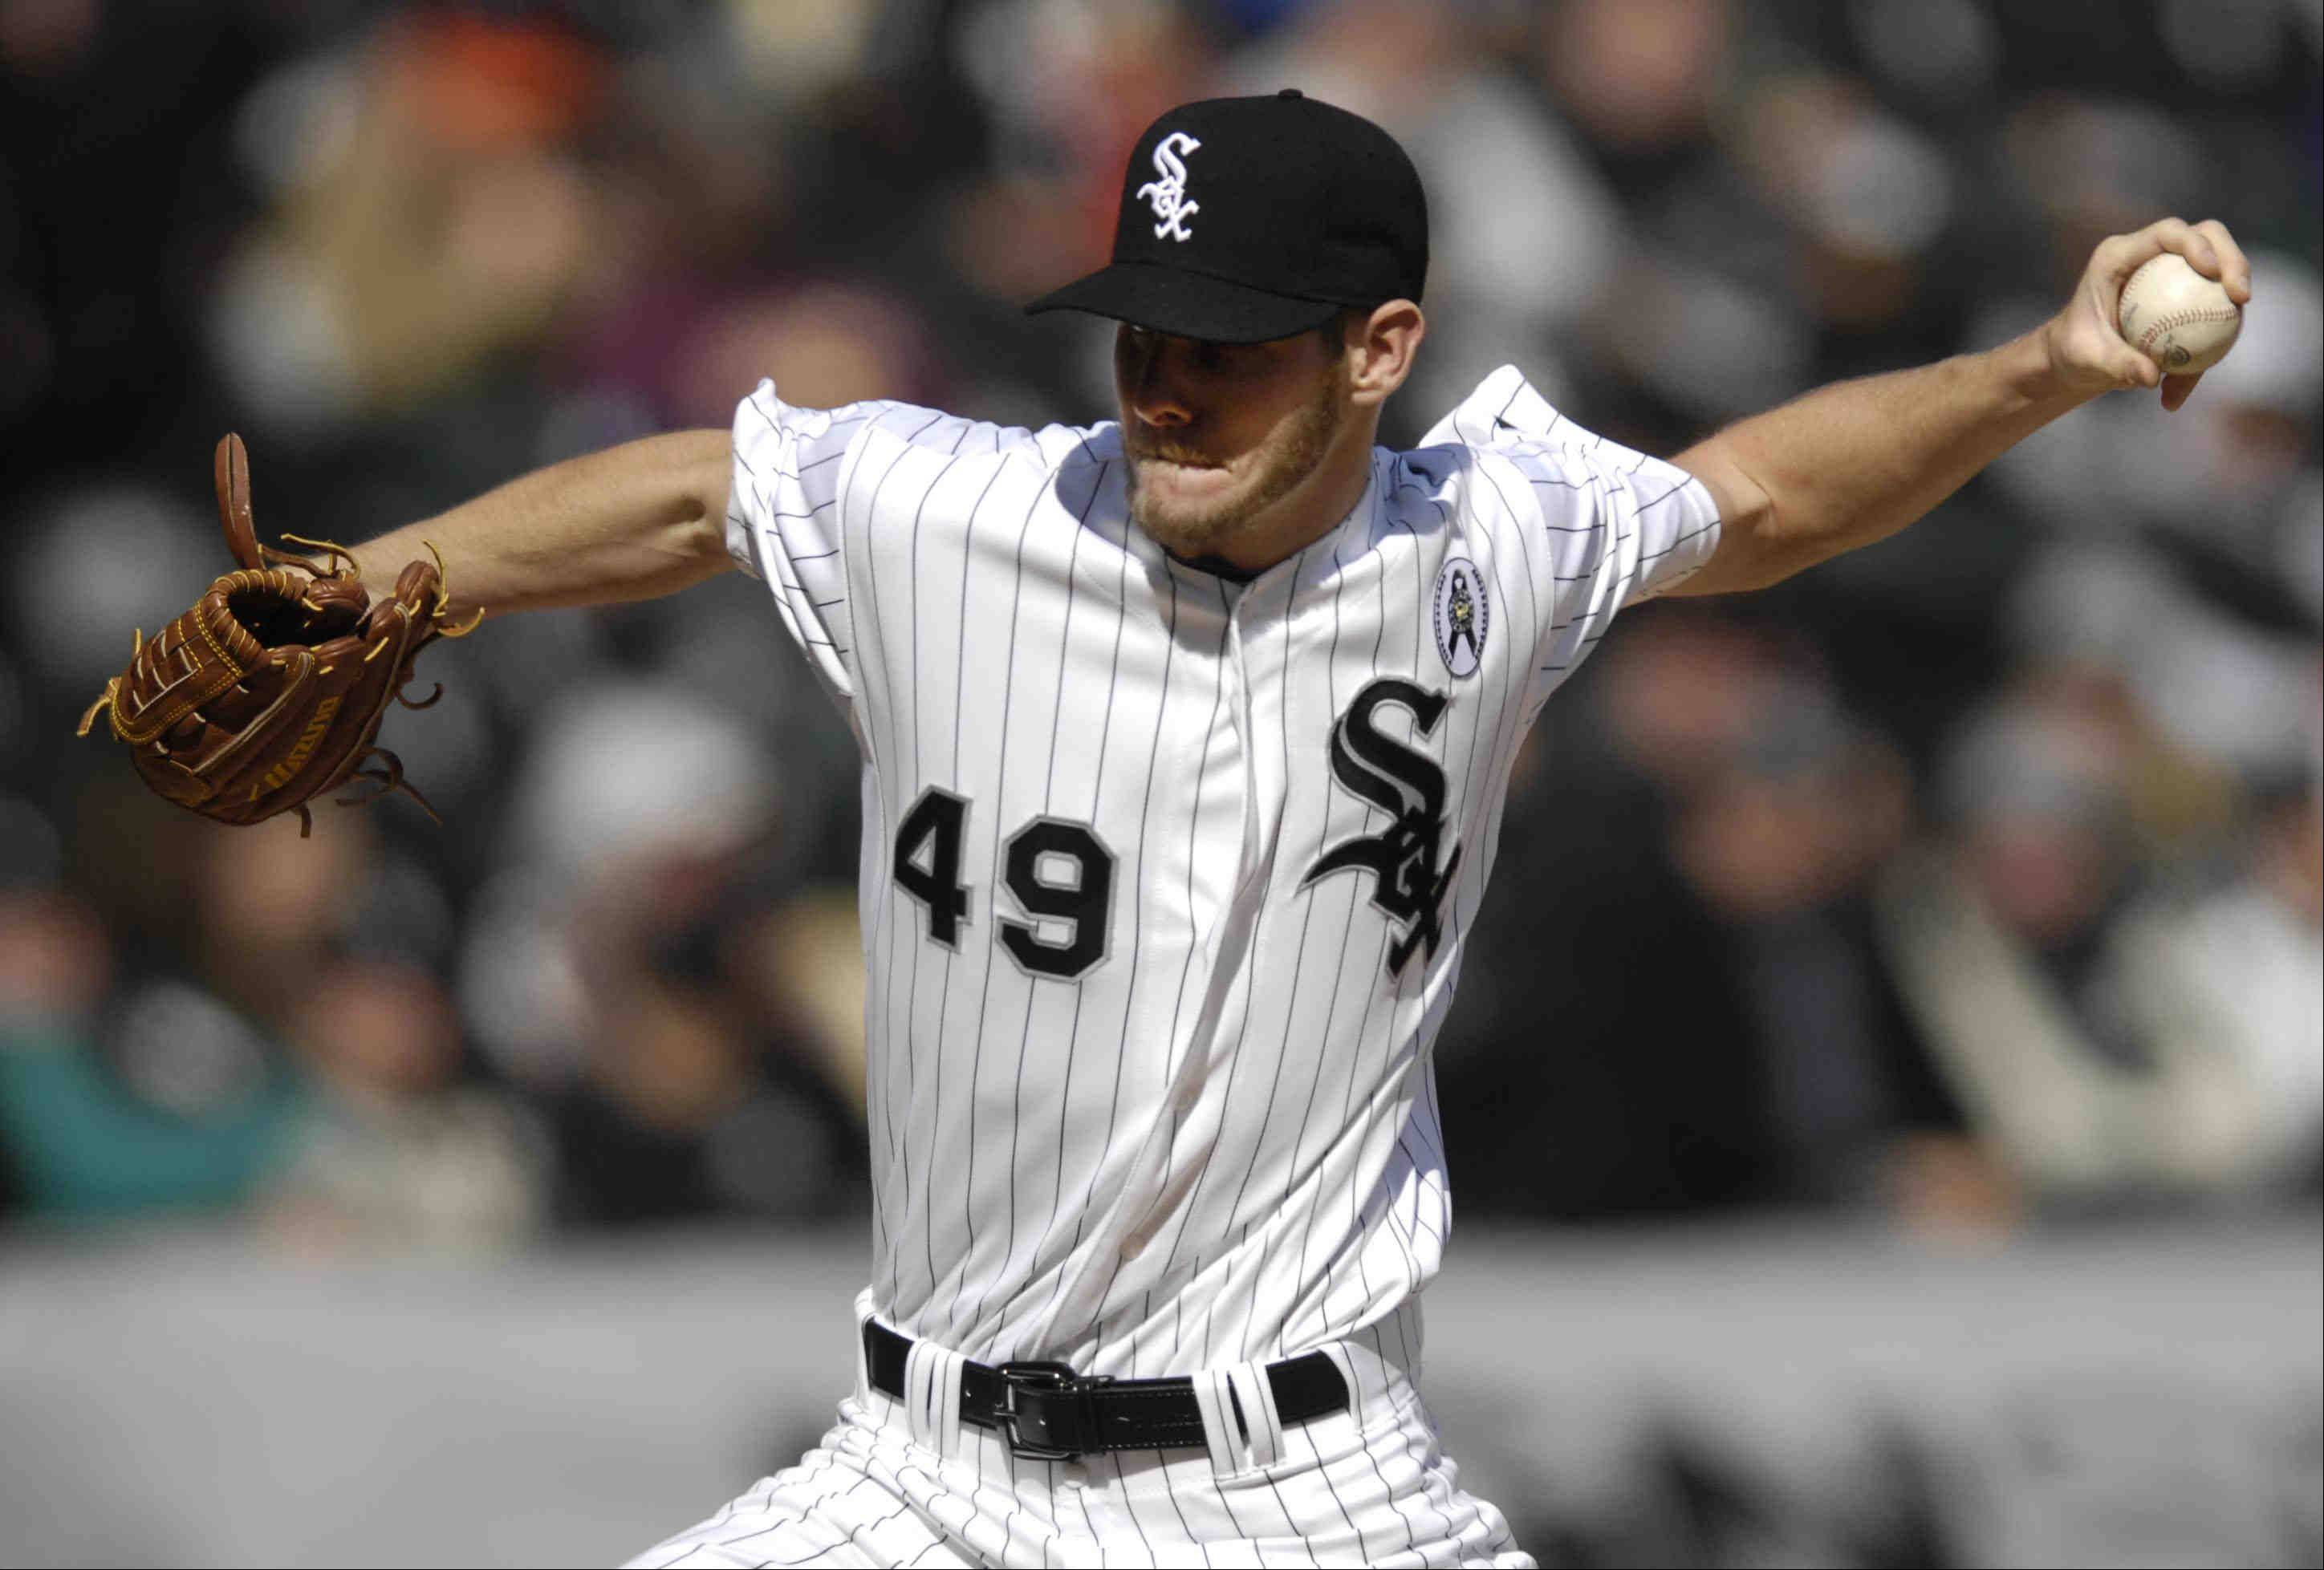 White Sox starting pitcher Chris Sale throws in the first inning against the Kansas City Royals on Opening Day at U.S. Cellular Field.